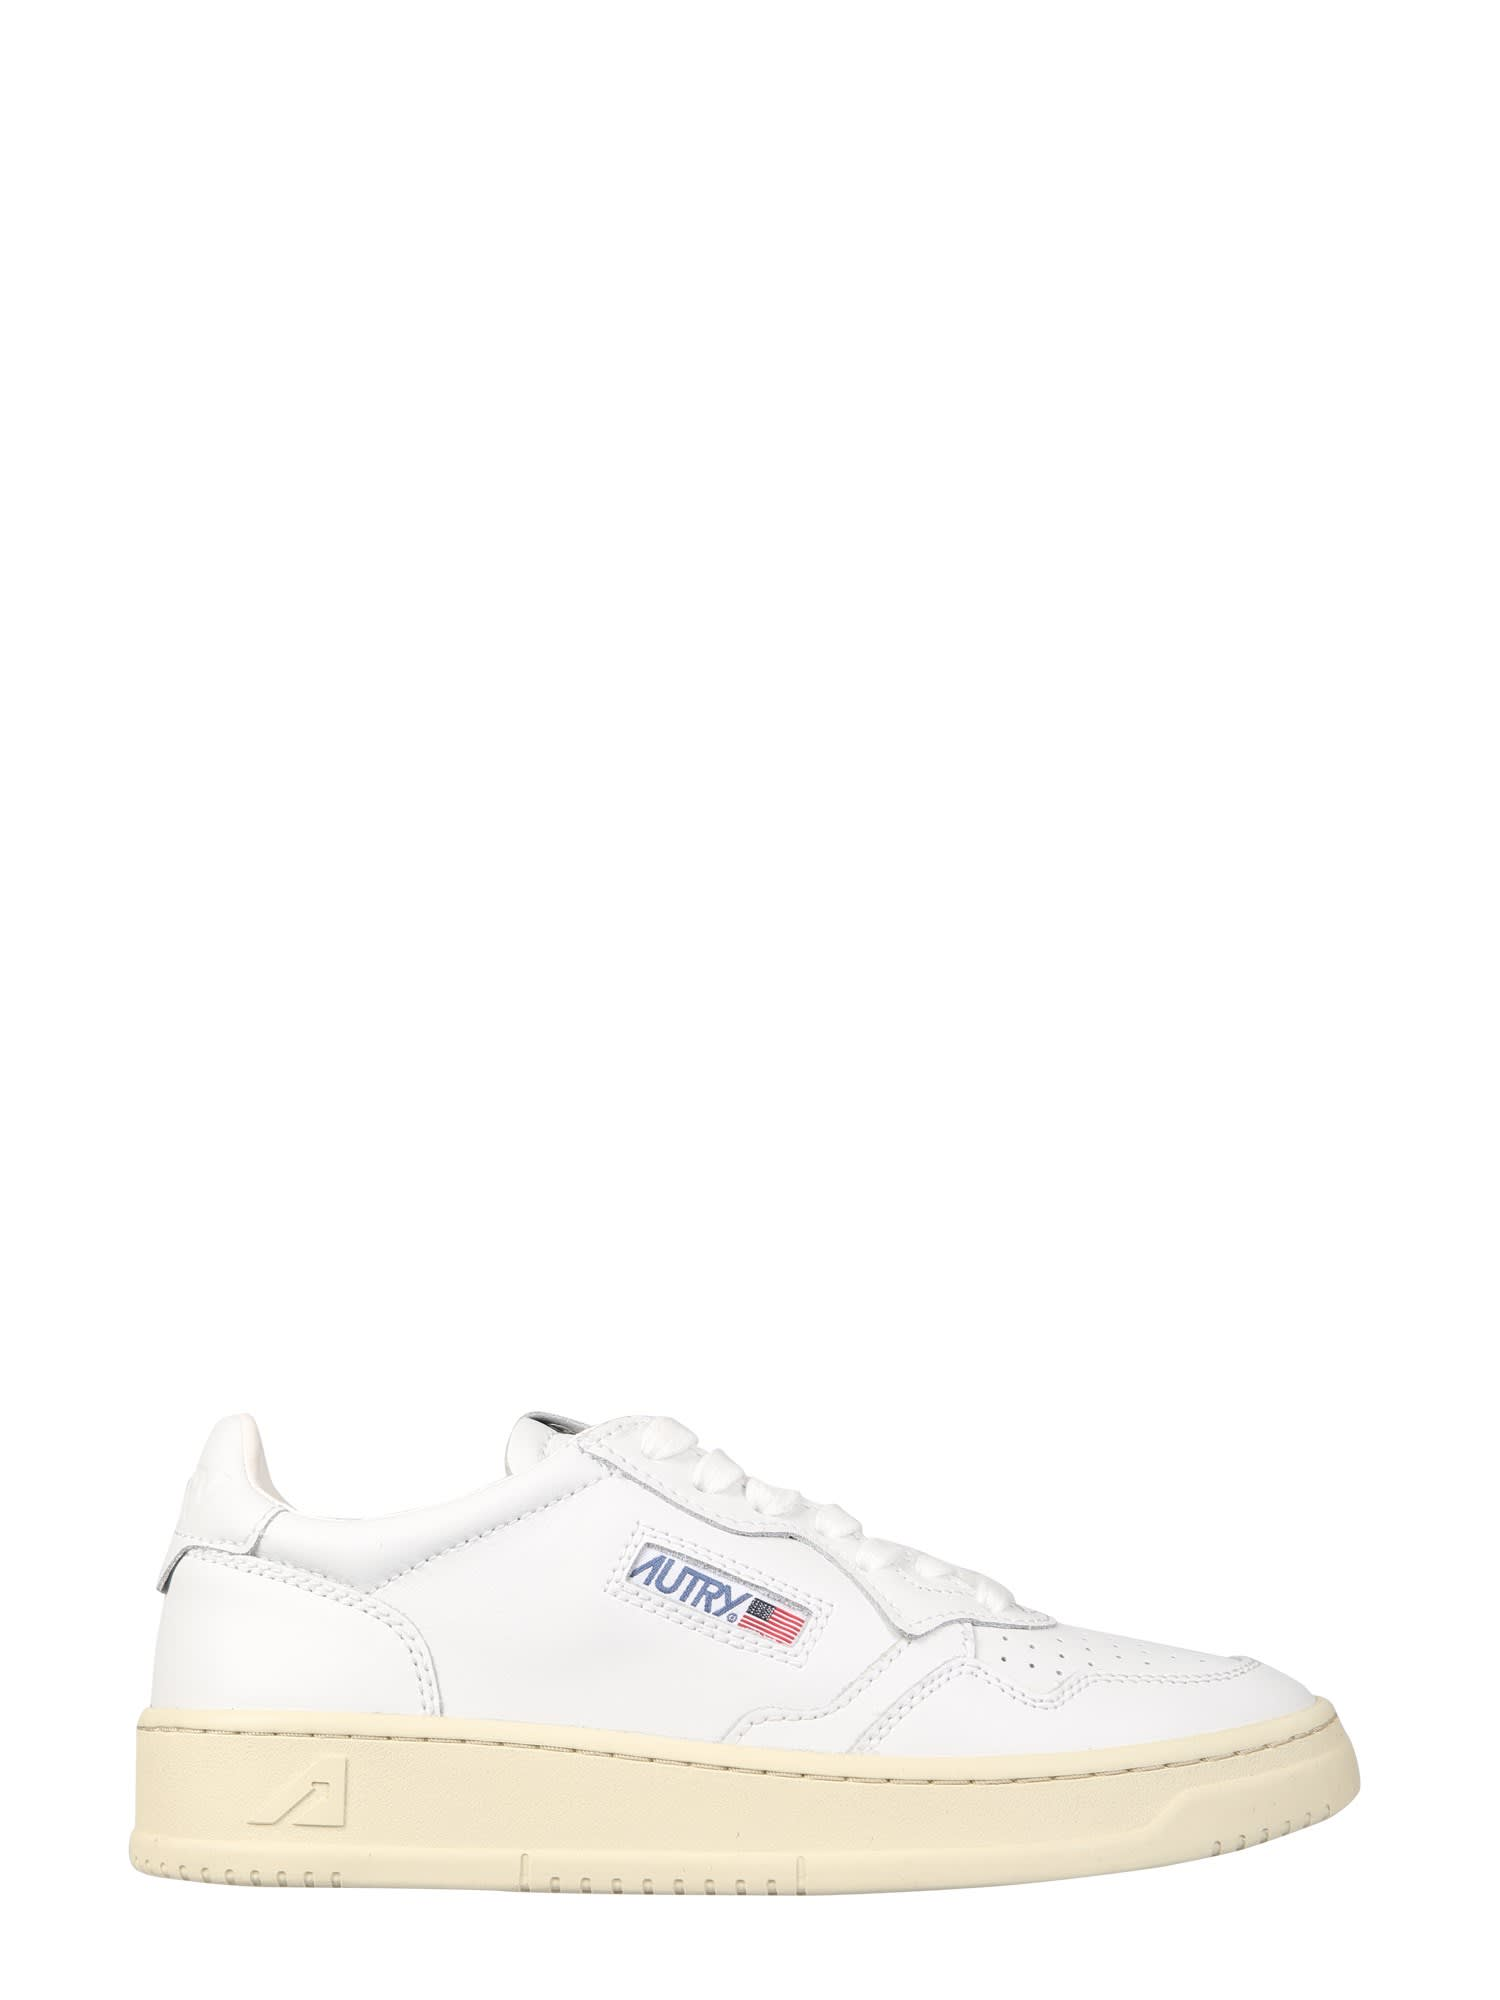 Autry Leathers LEATHER SNEAKERS